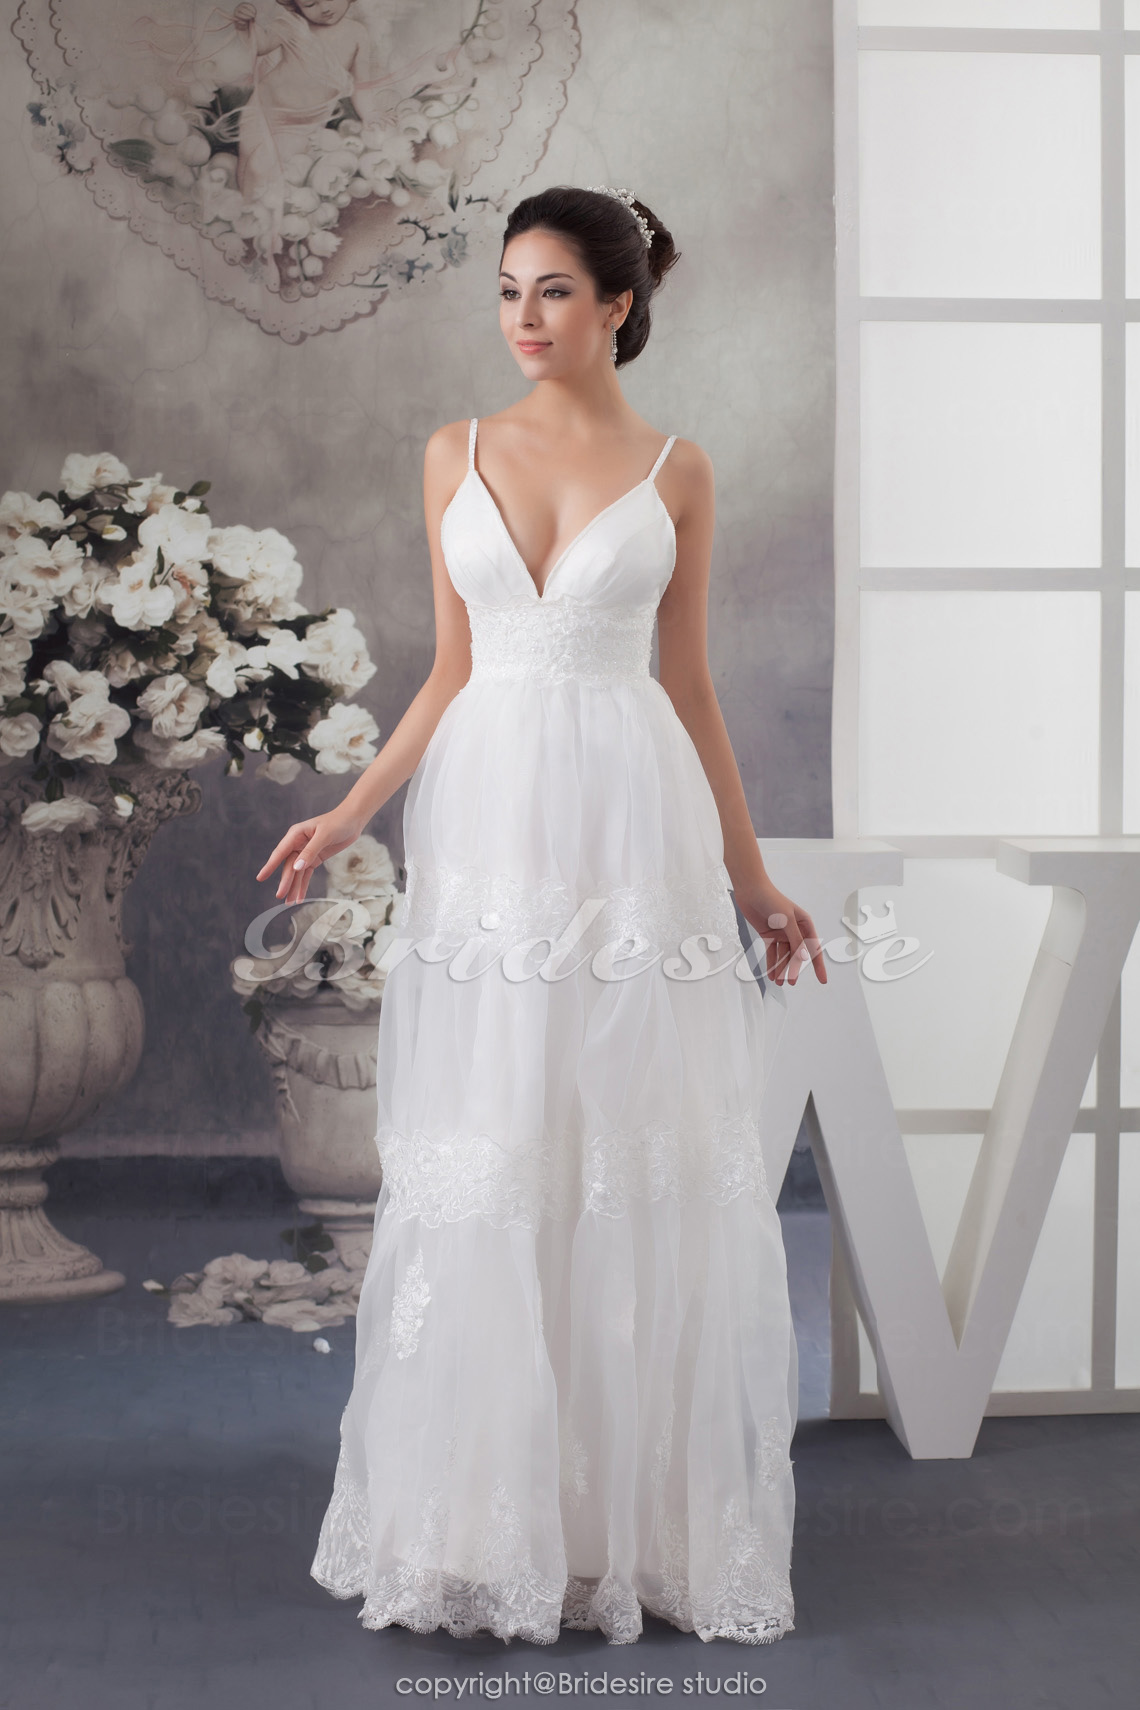 A-line Spaghetti Straps Floor-length Sleeveless Chiffon Wedding Dress